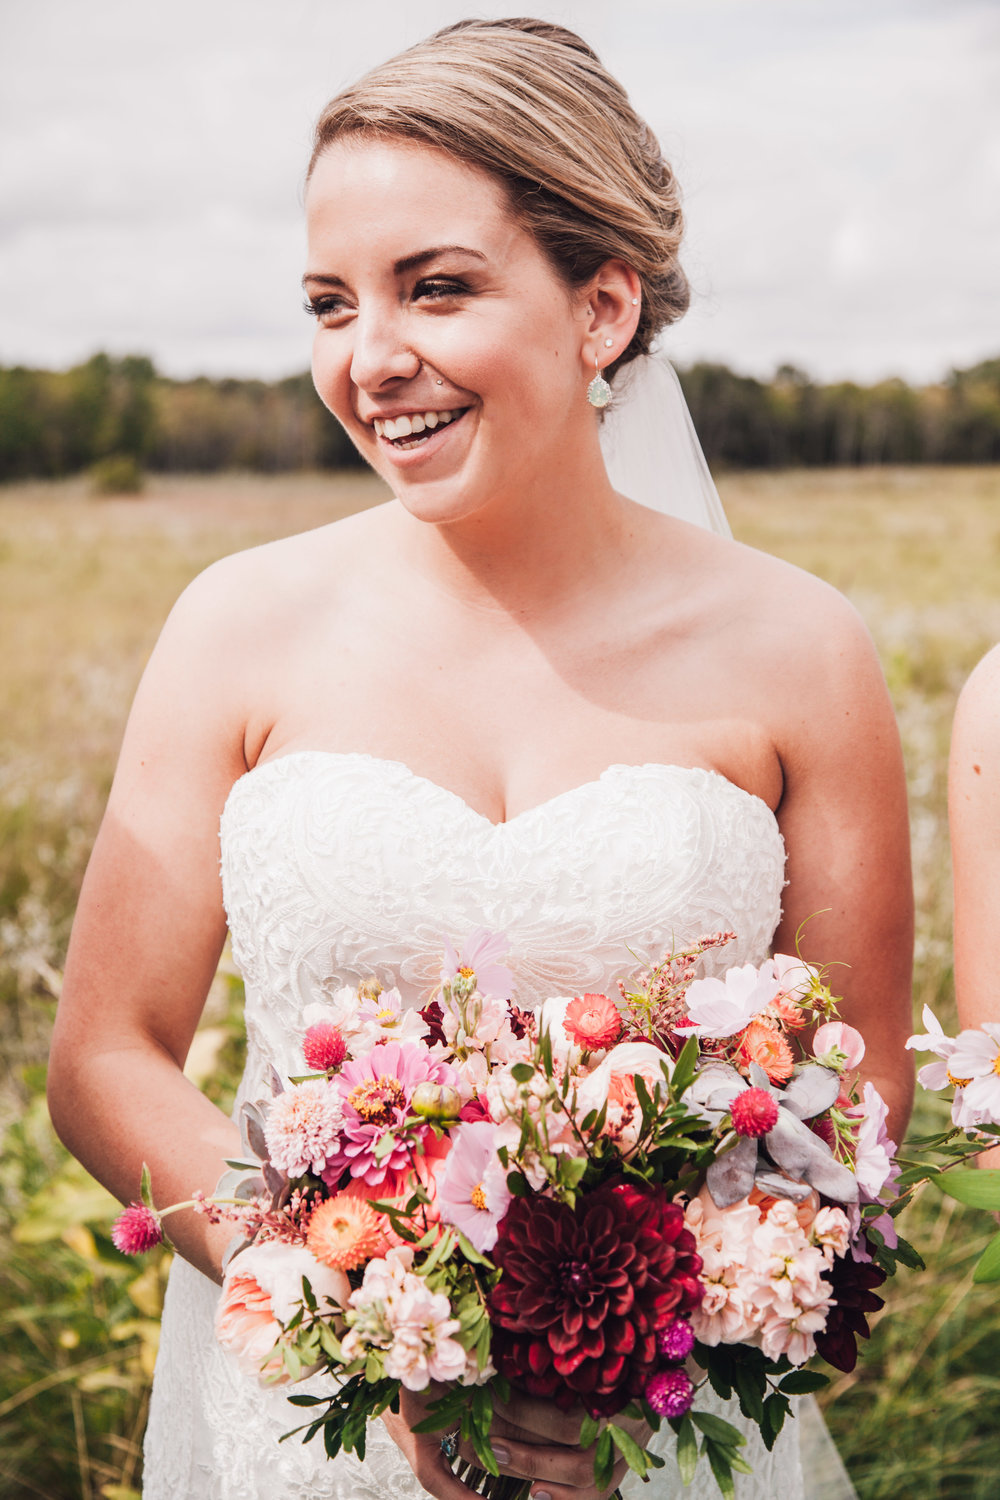 Peach and Burgundy Bridal Bouquet - Wedding Florist in Winnipeg